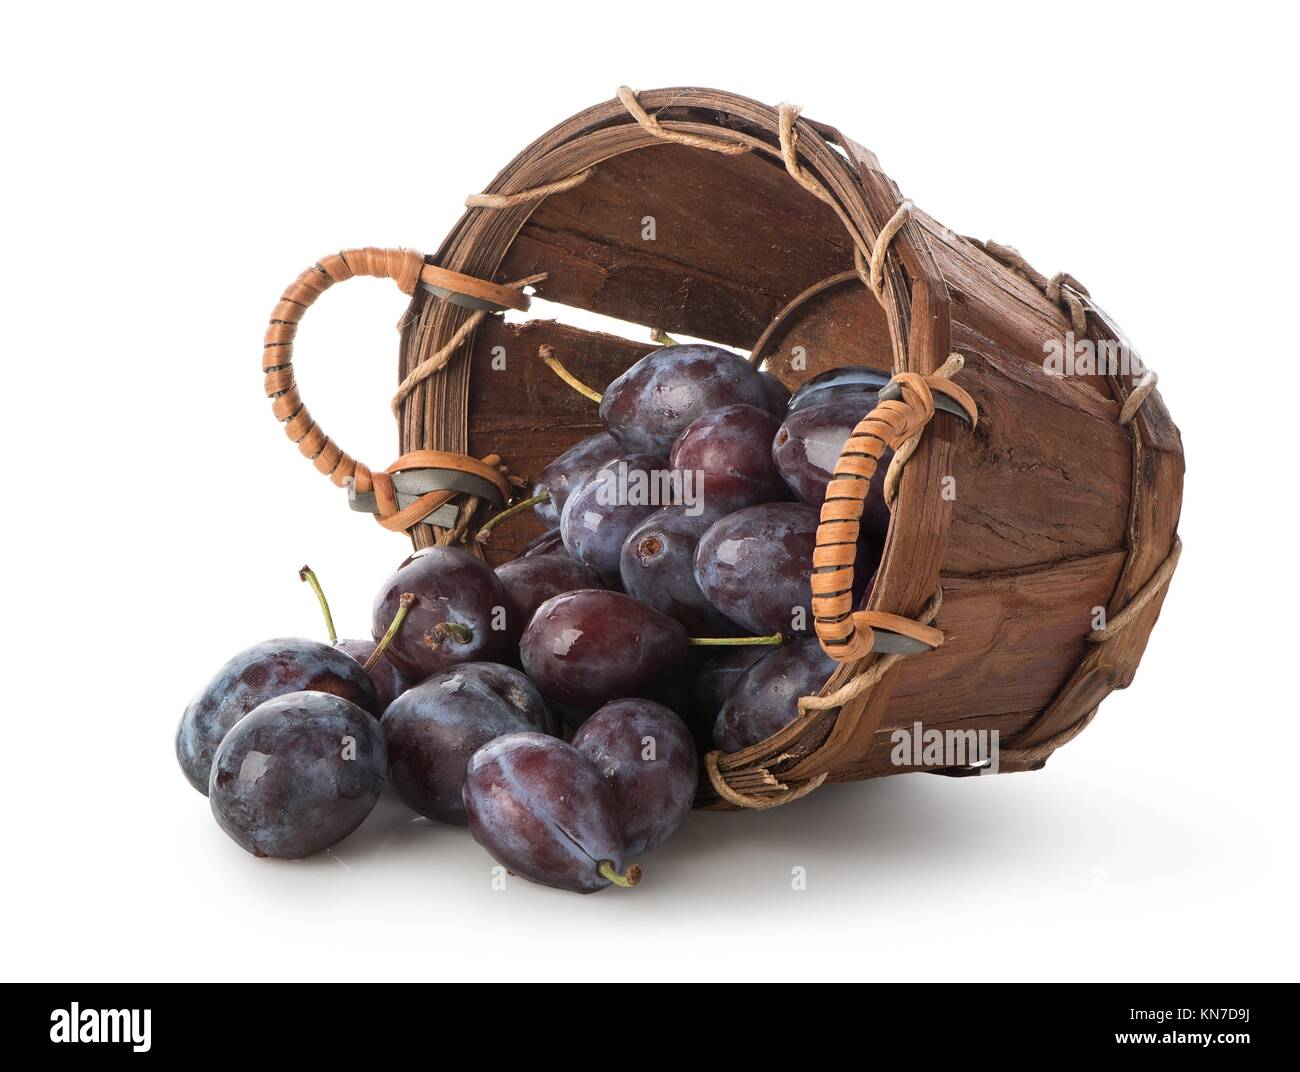 Plums in a basket isolated on white. Stock Photo